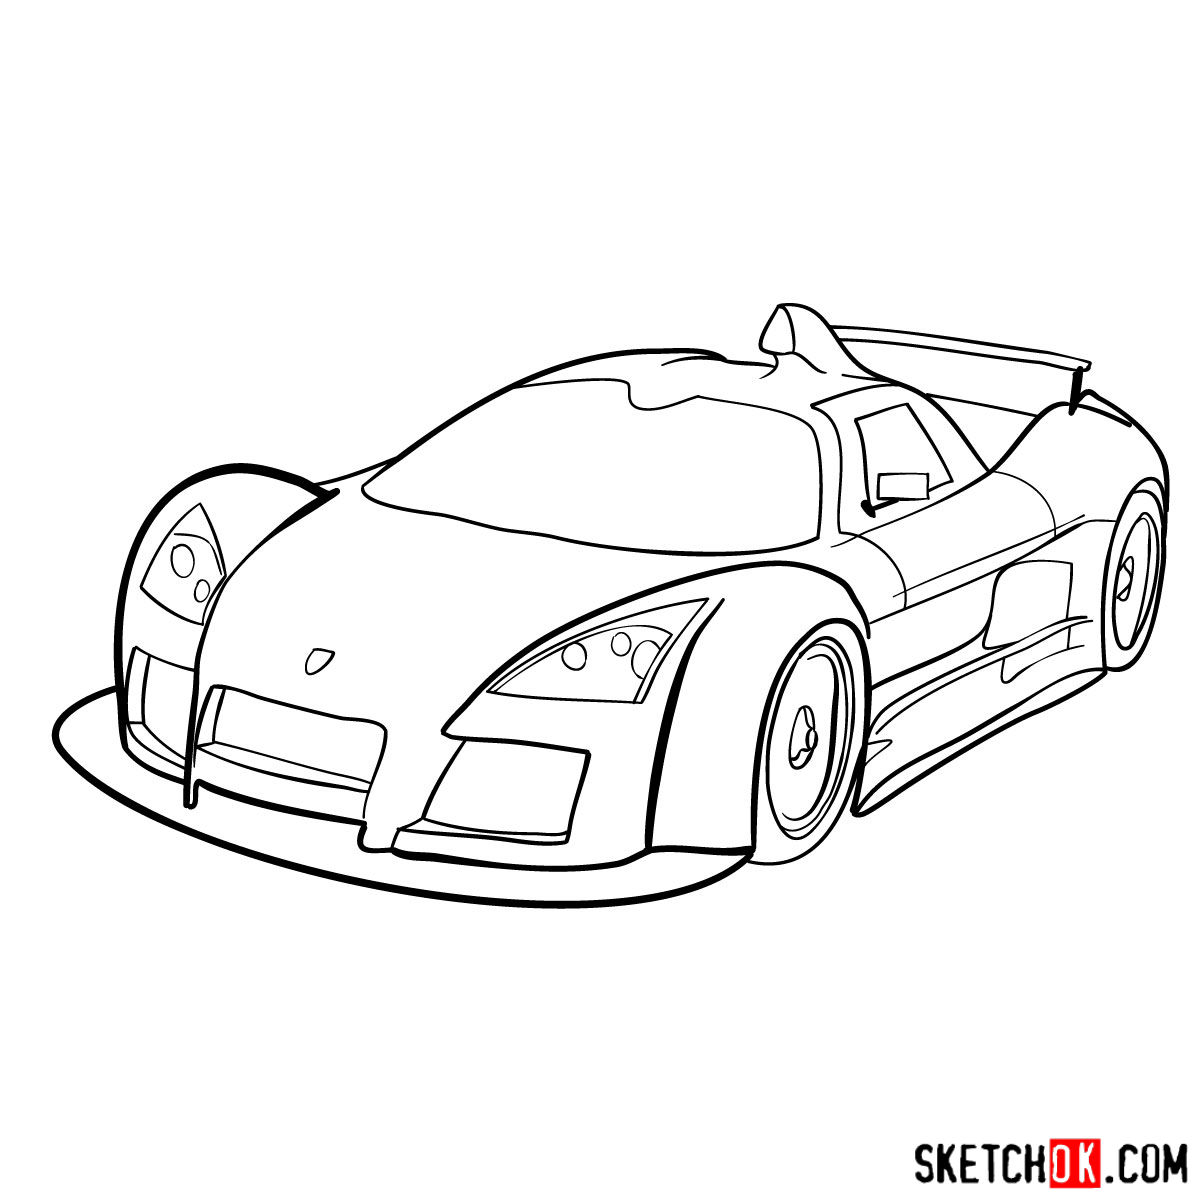 How to draw Gumpert Apolo Sport 2005 - step 10